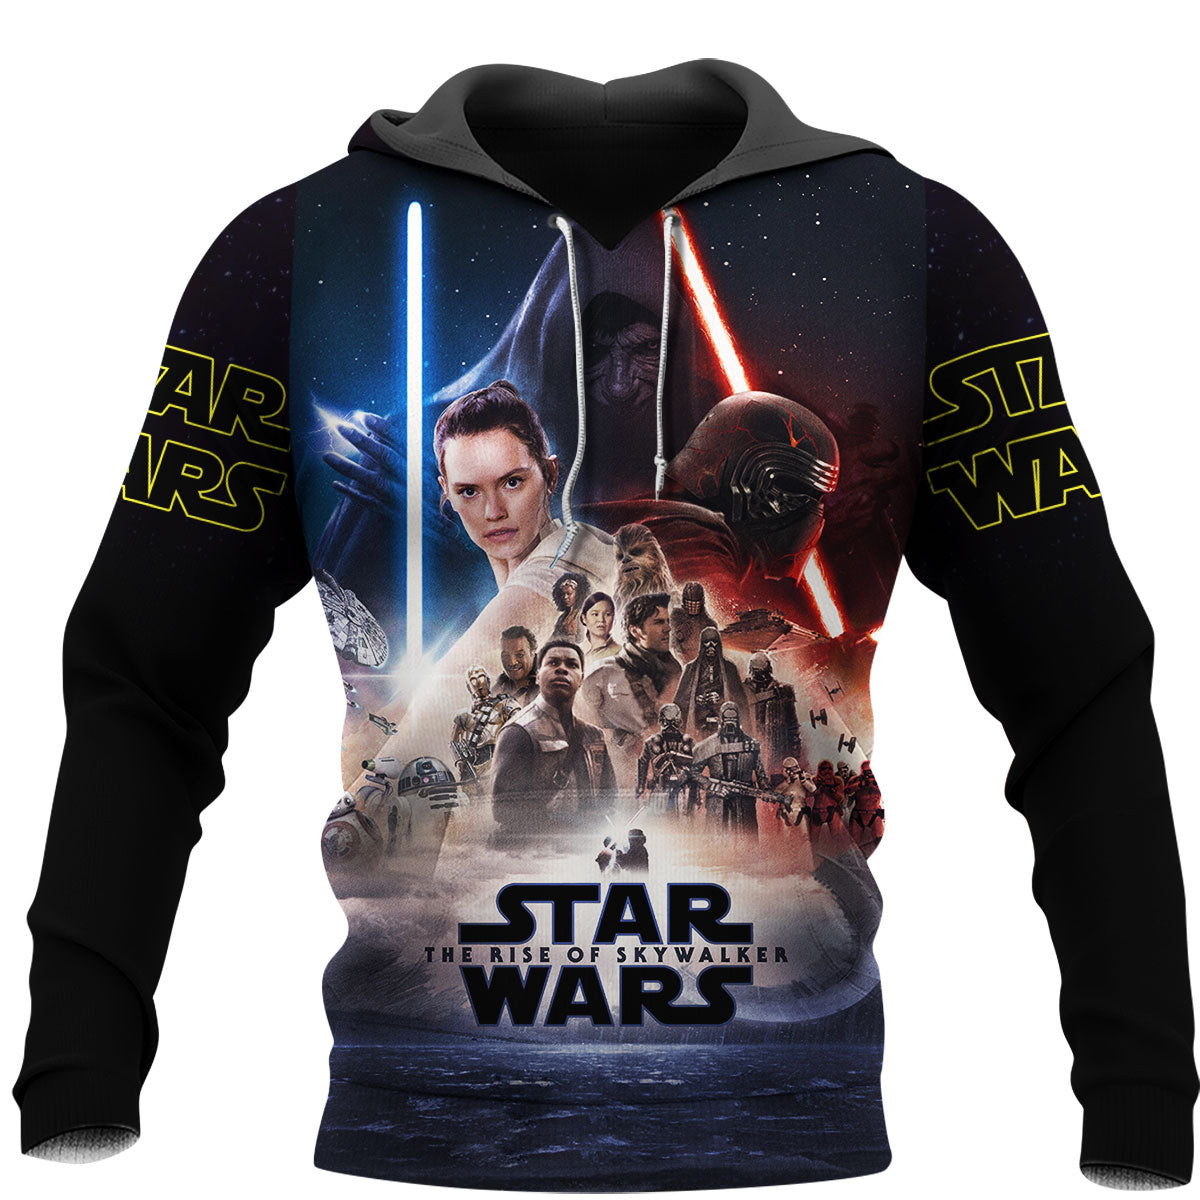 Gopowear_Movie_The-Rise-Of-Skywalker_STA0109042_3dc_hoodie.jpg